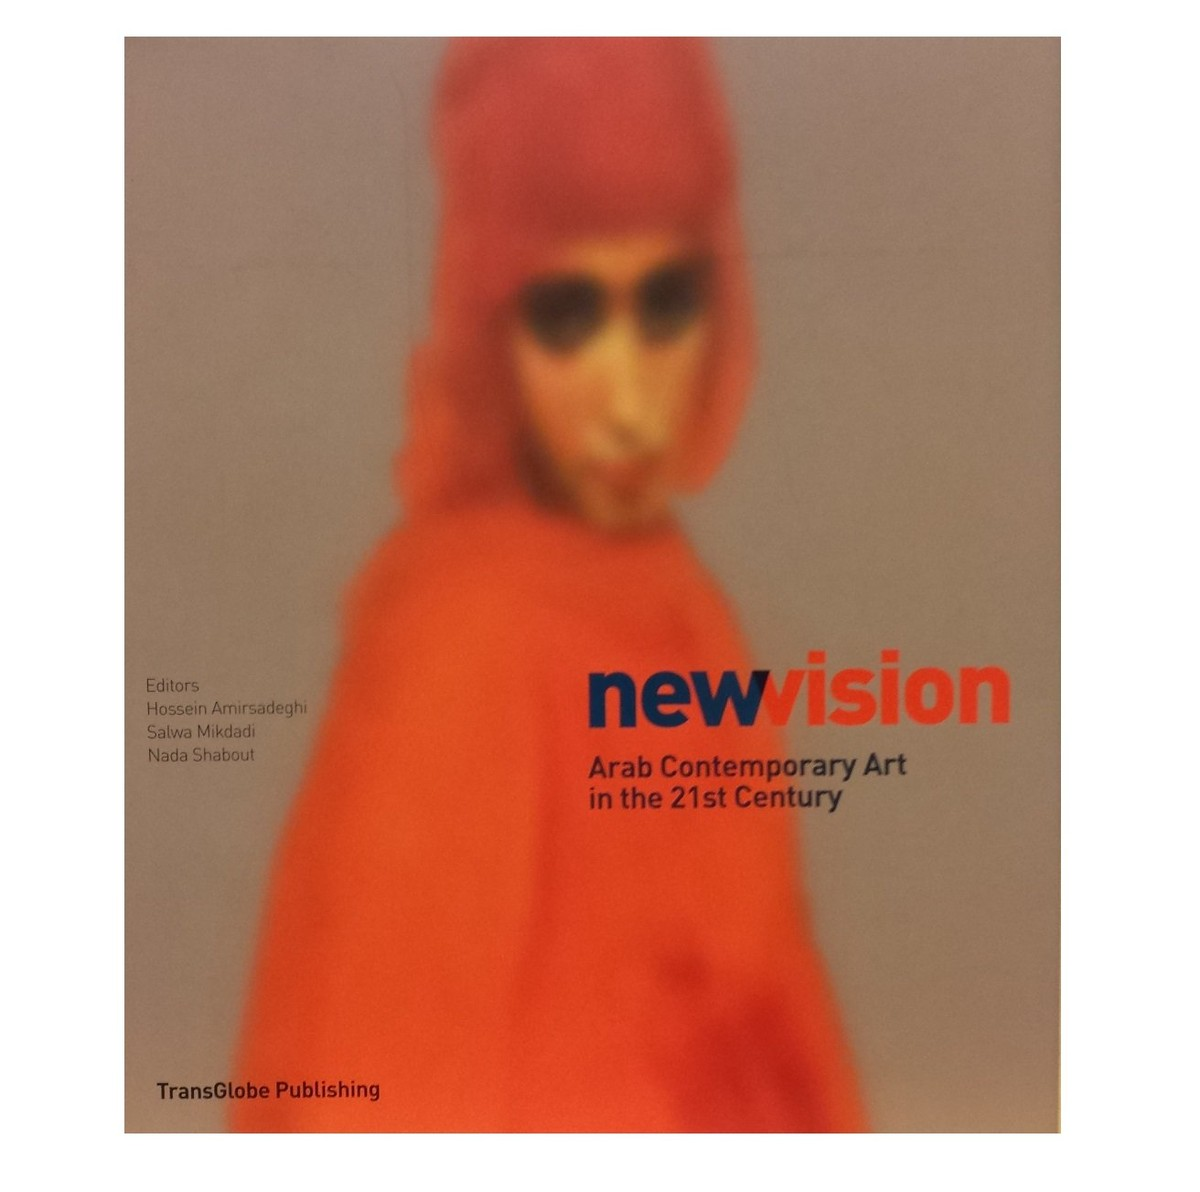 New Vision. Arab Contemporary Art in the 21st Century по 1 500.00 руб от изд. TransGlobe